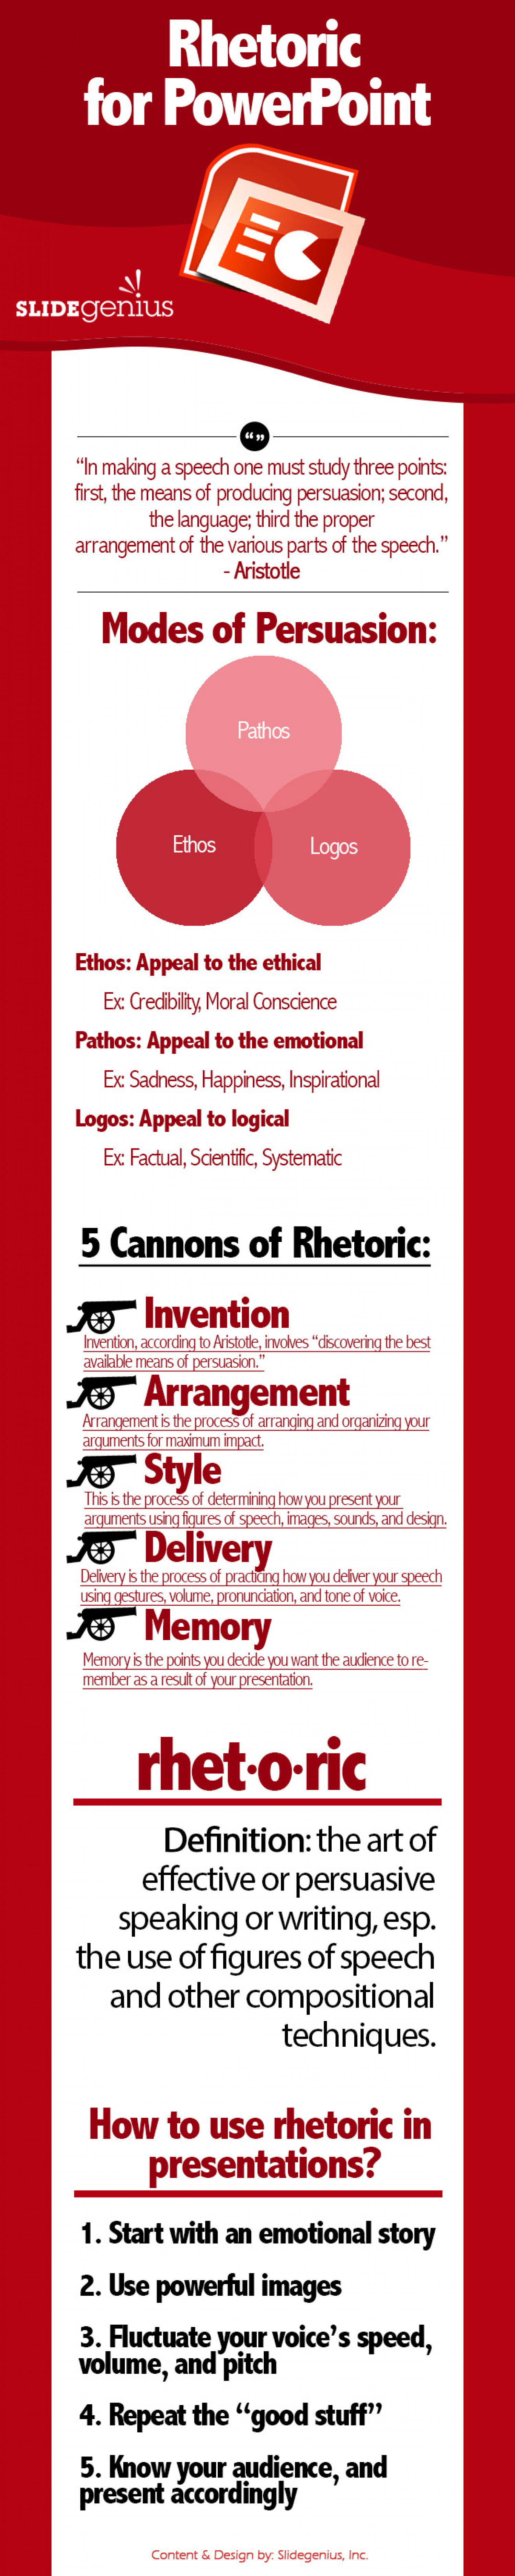 How to Use Rhetoric in Presentations  Infographic